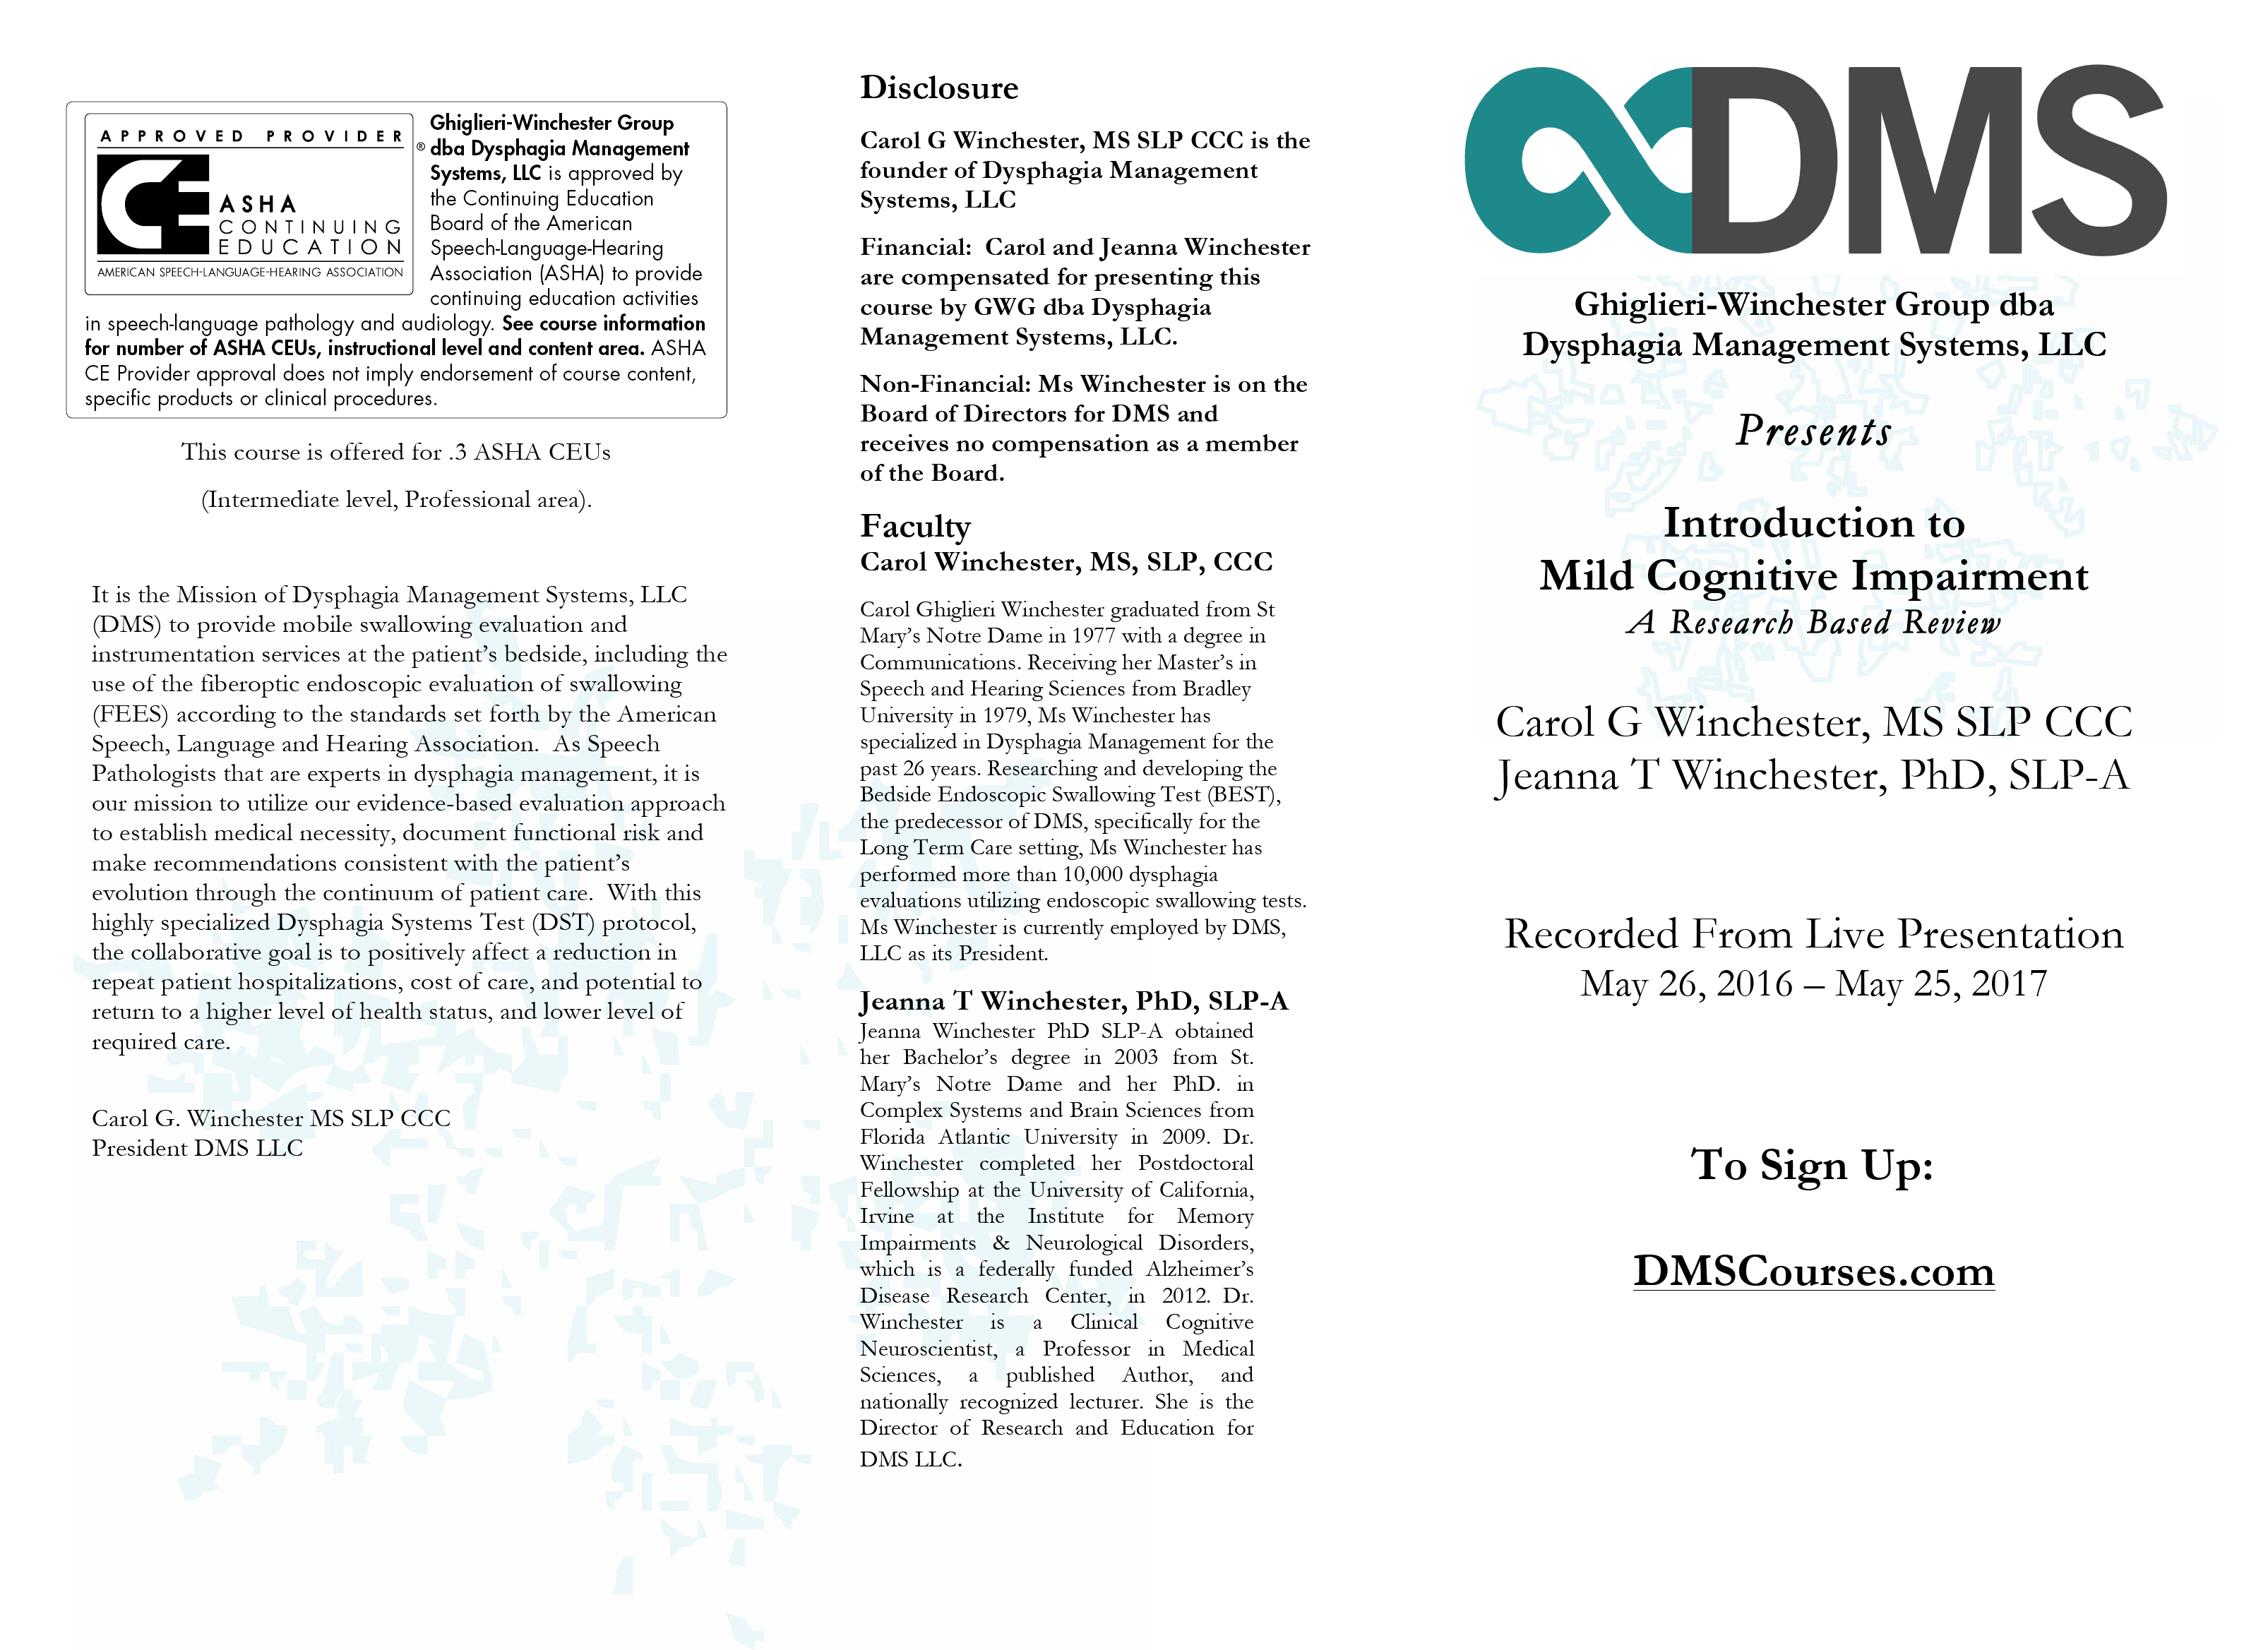 gwg-aaoq1216-r-introduction-to-mild-cognitive-impairment-1